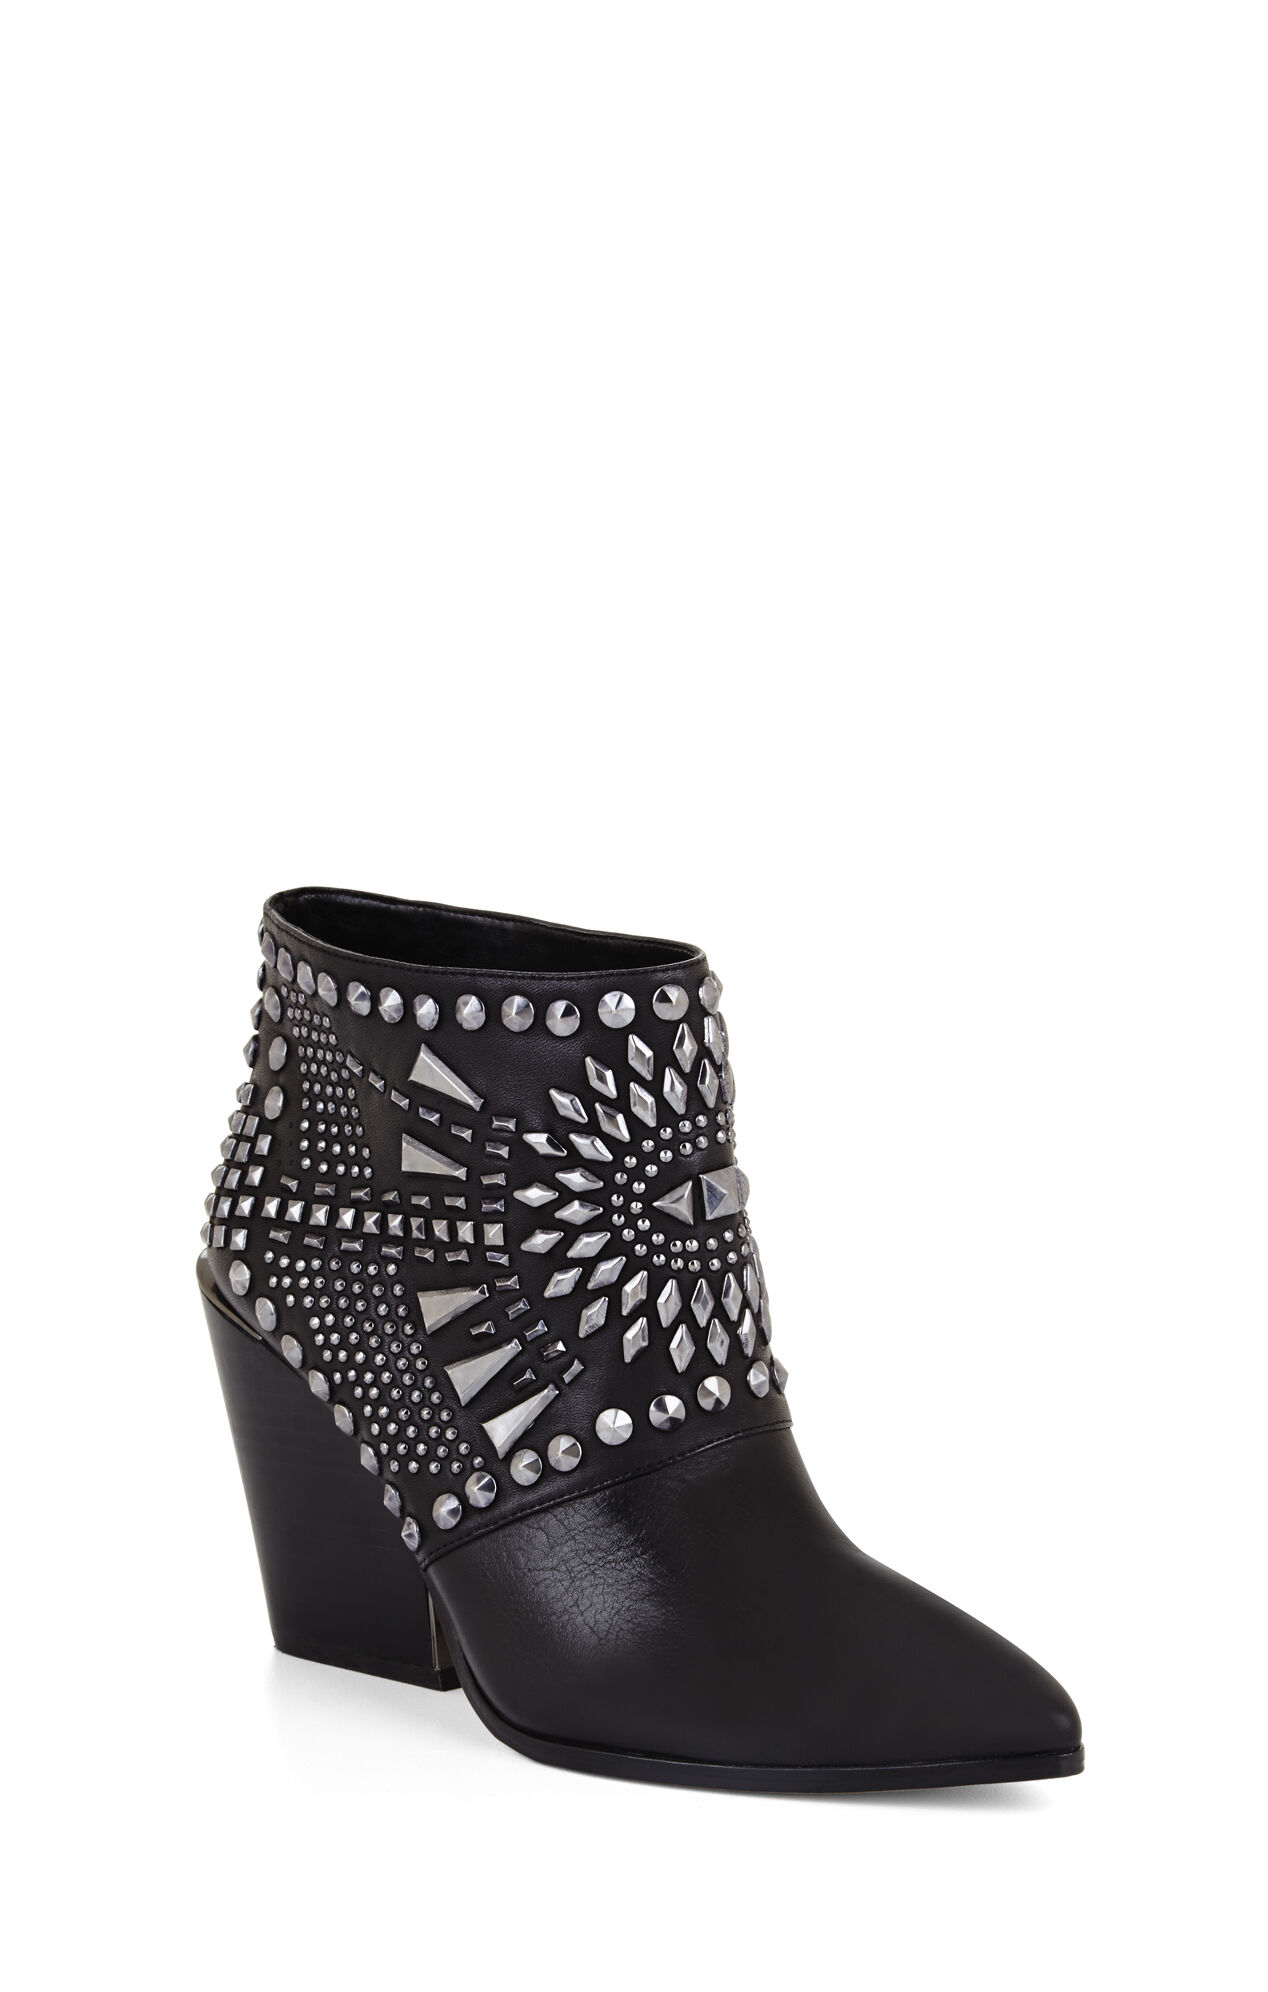 Creed Geometric-Studded Bootie